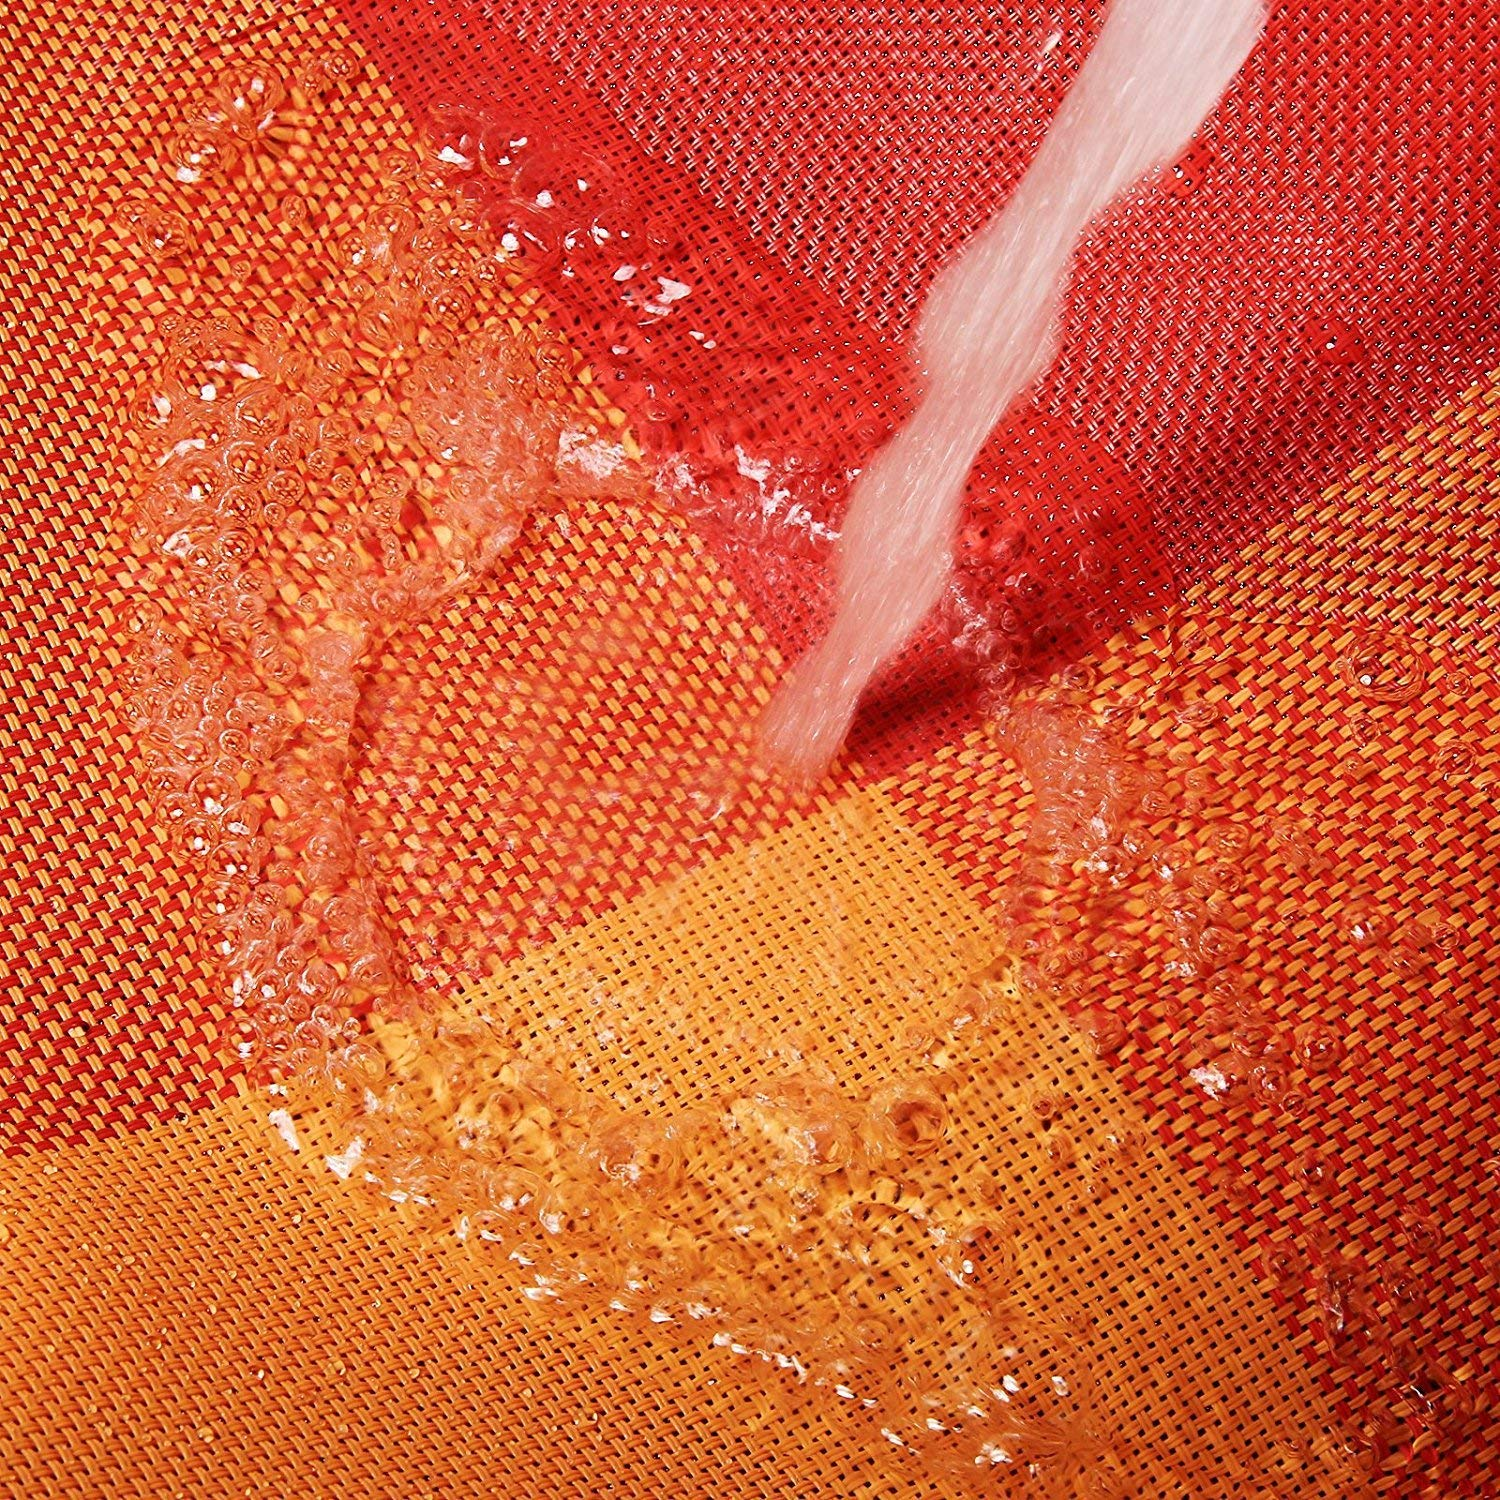 Orange by Pretty Decor Pretty Decor PVC Place Mats Non-slip Crossweave Woven Dining Table Mats for Home Daily Use and Restaurant Use Set of 4